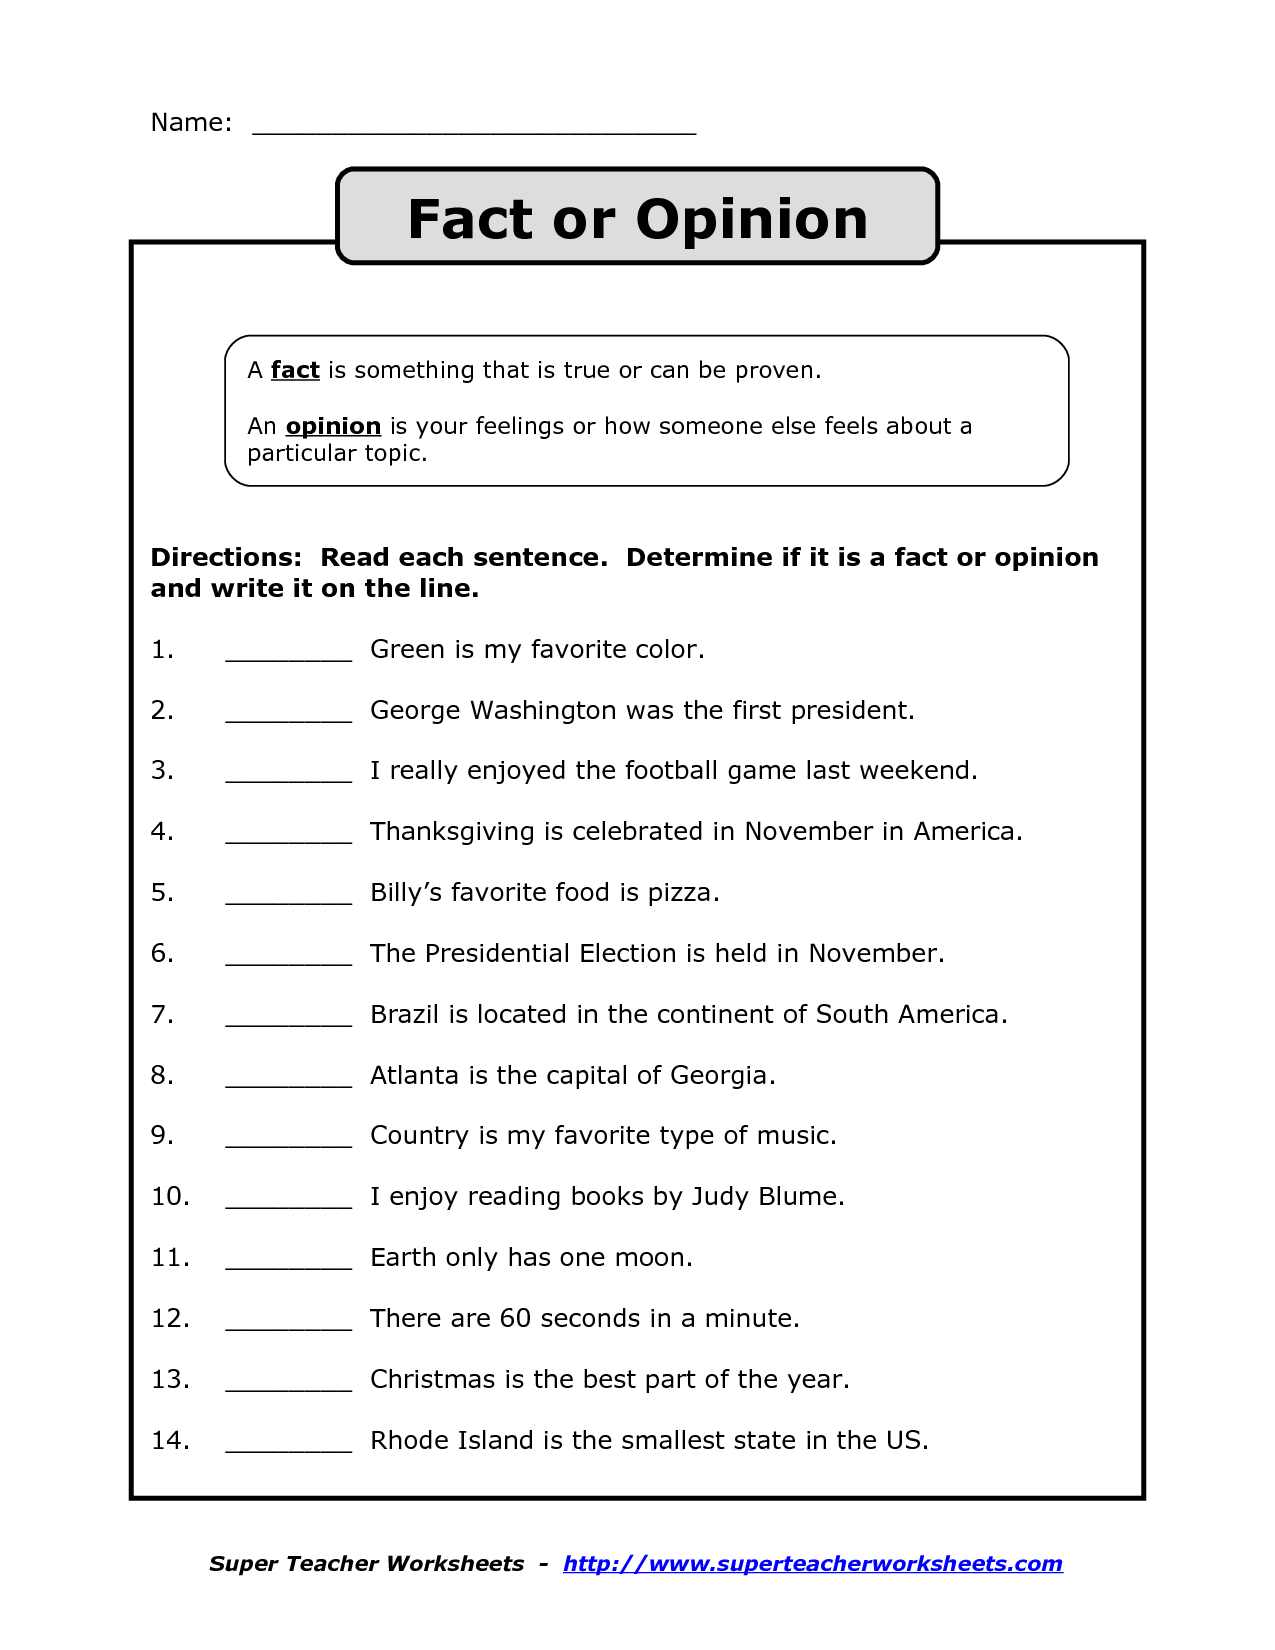 Opinion Worksheet